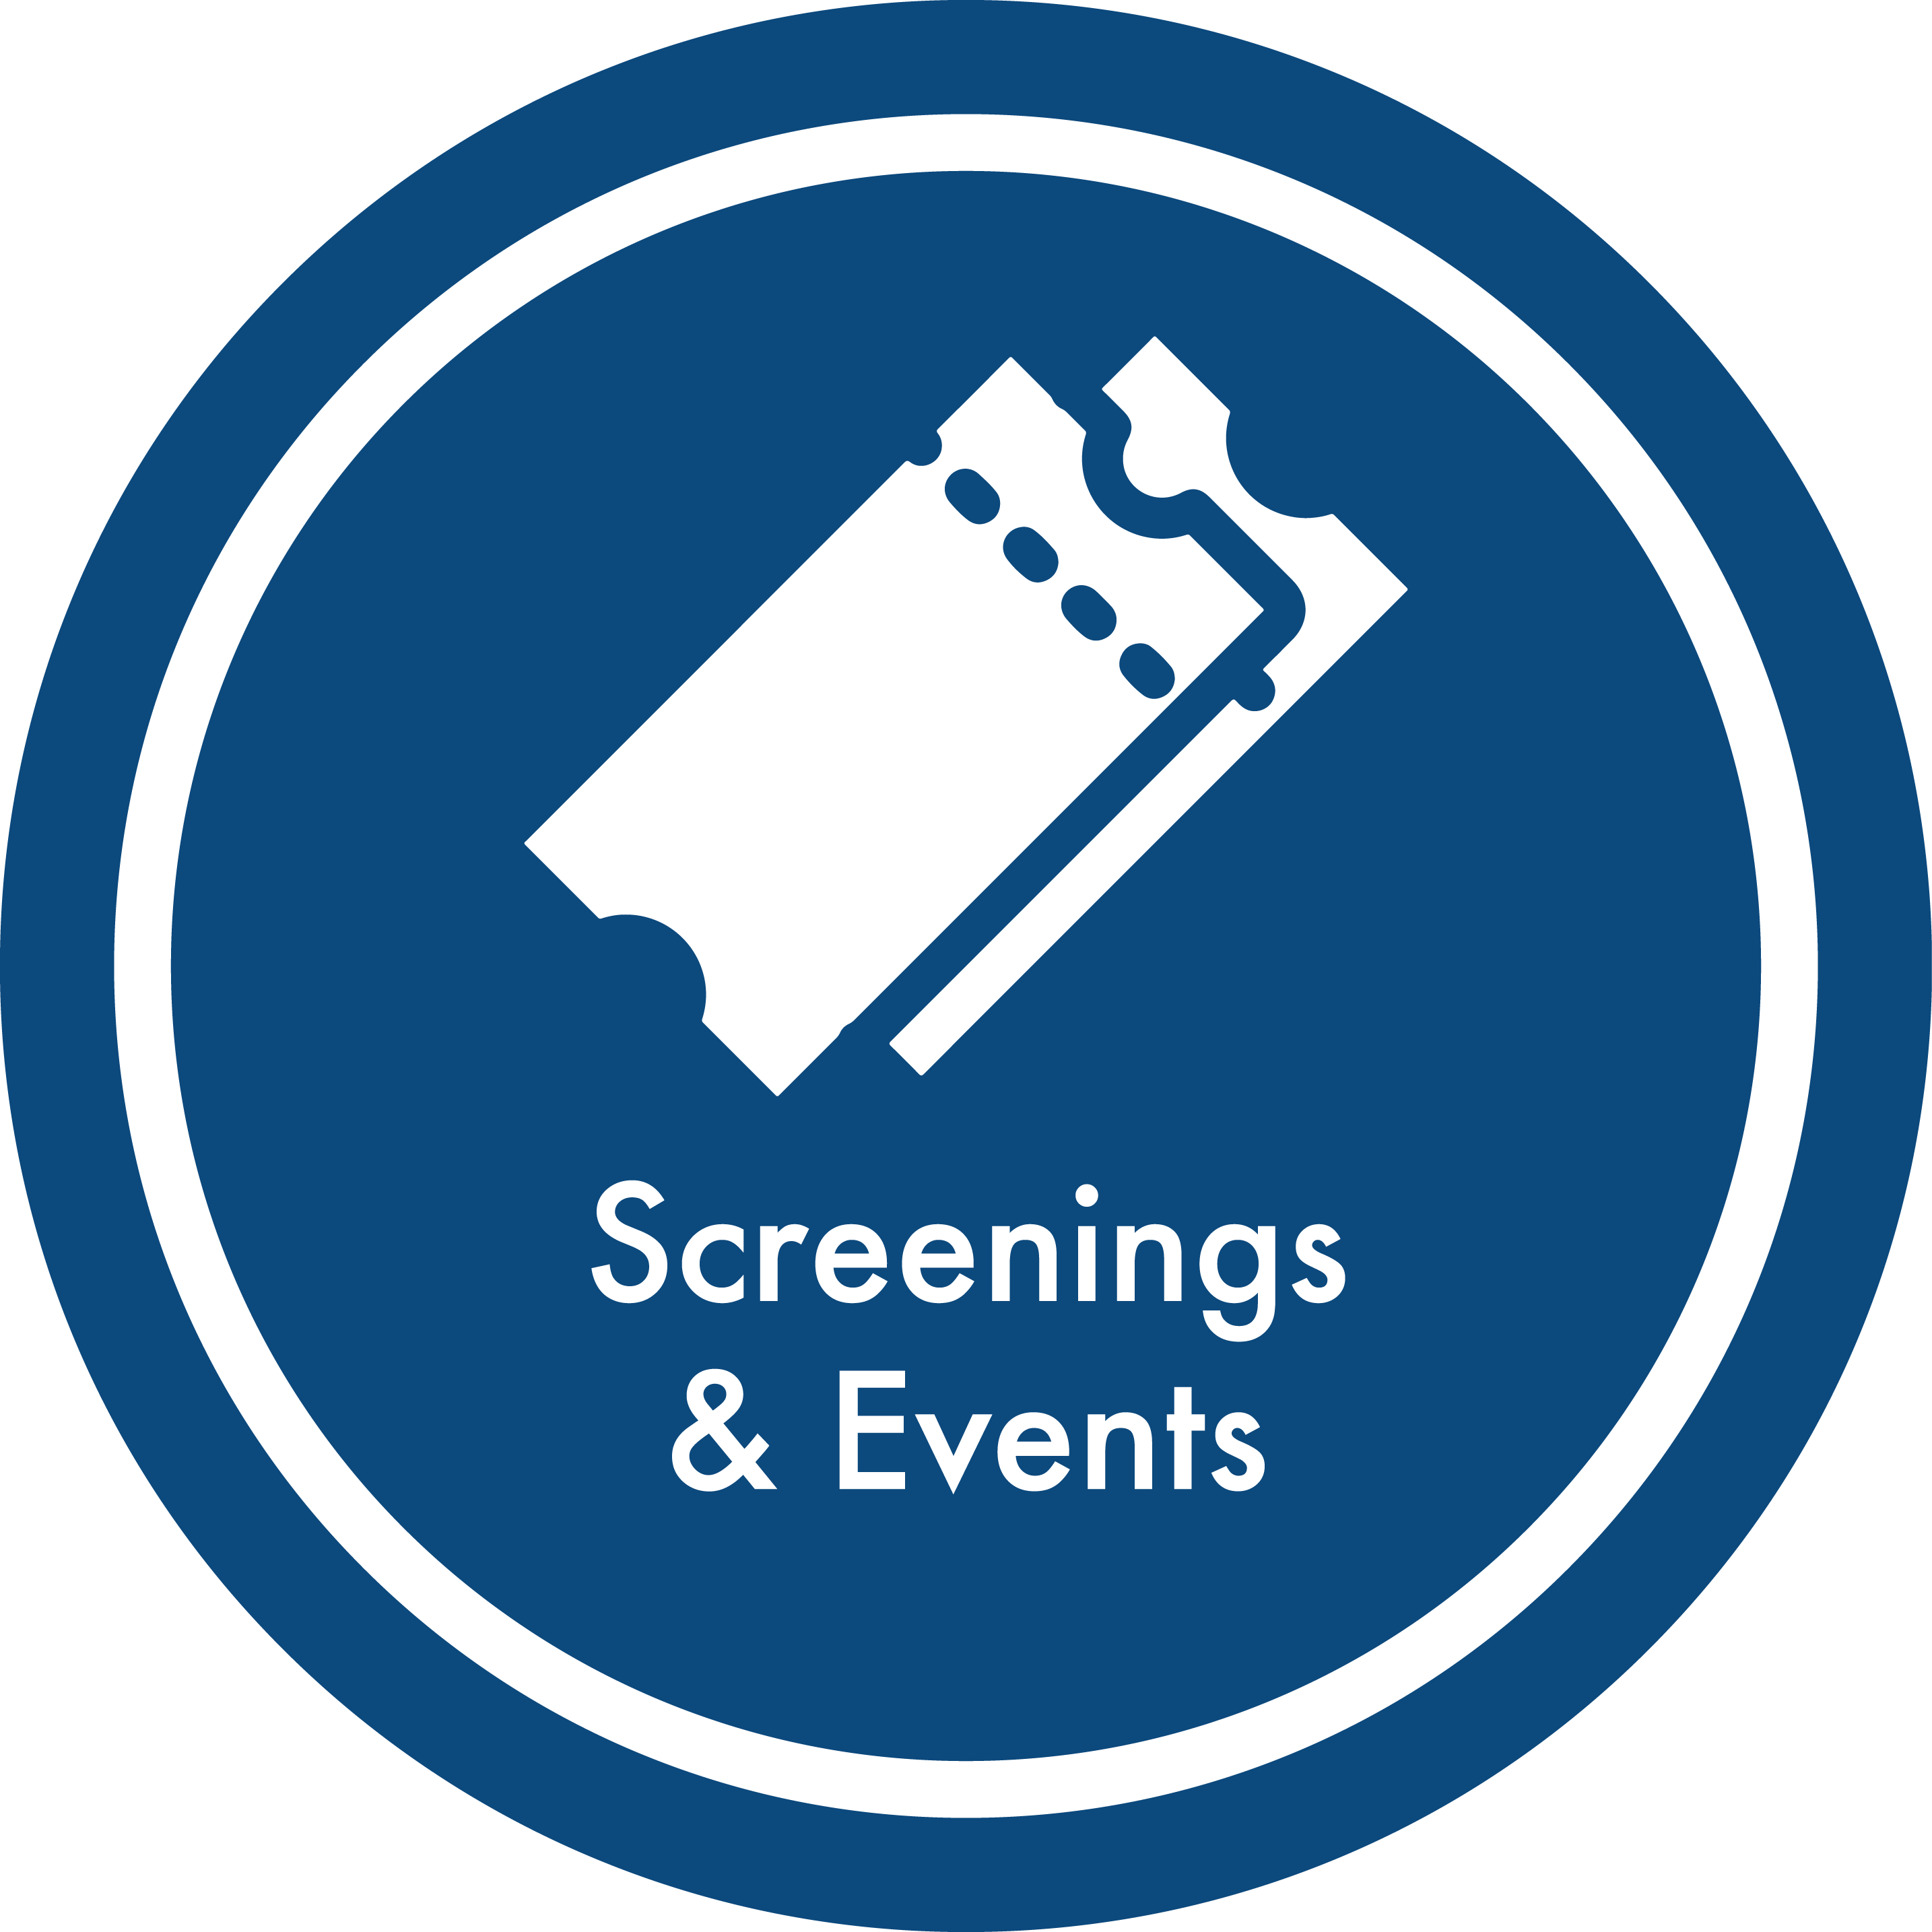 Screenings & Events